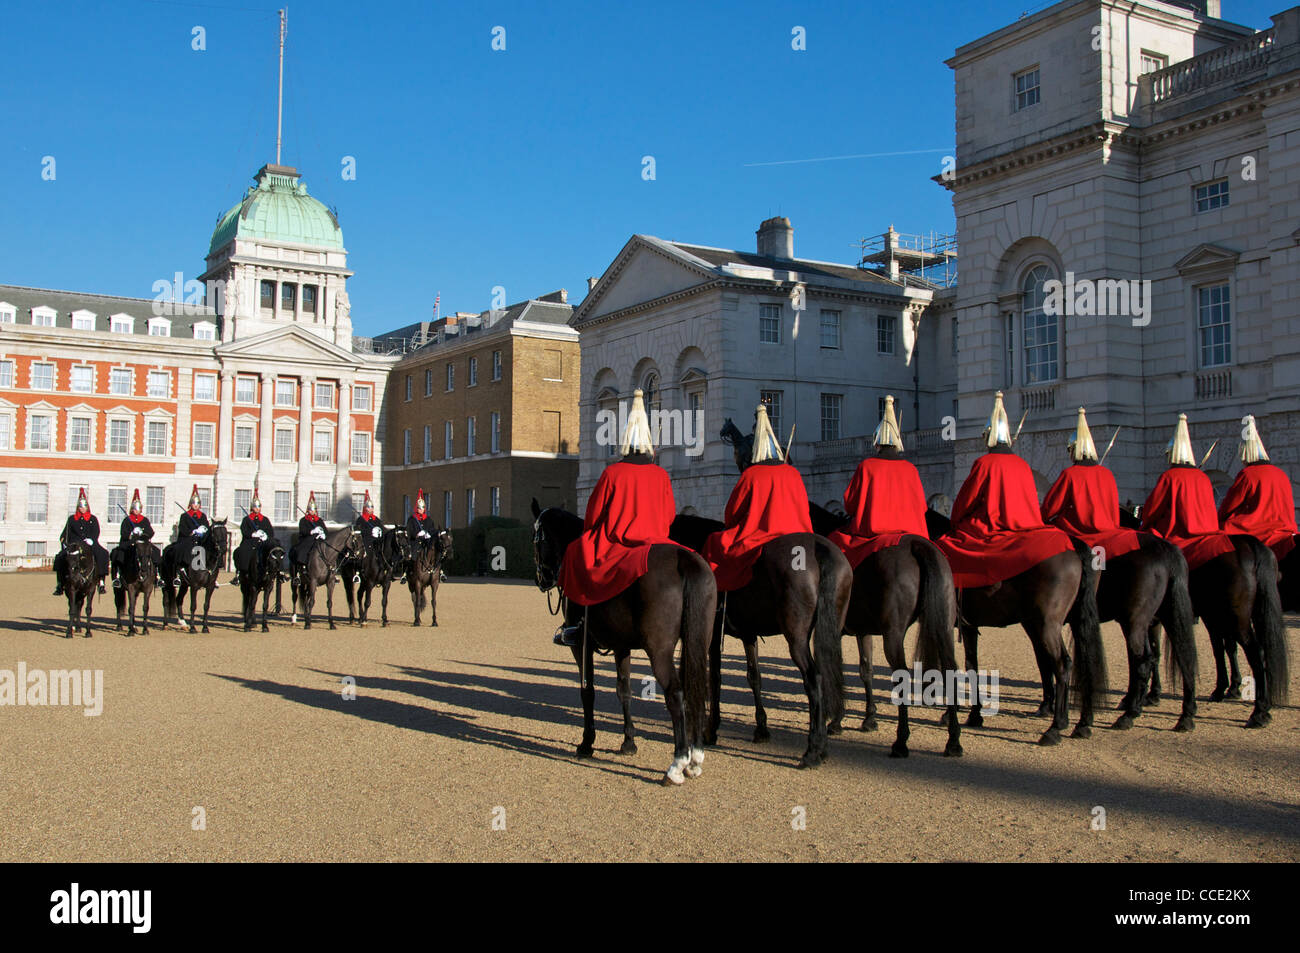 Changing of the guard Horse Guards Parade London England